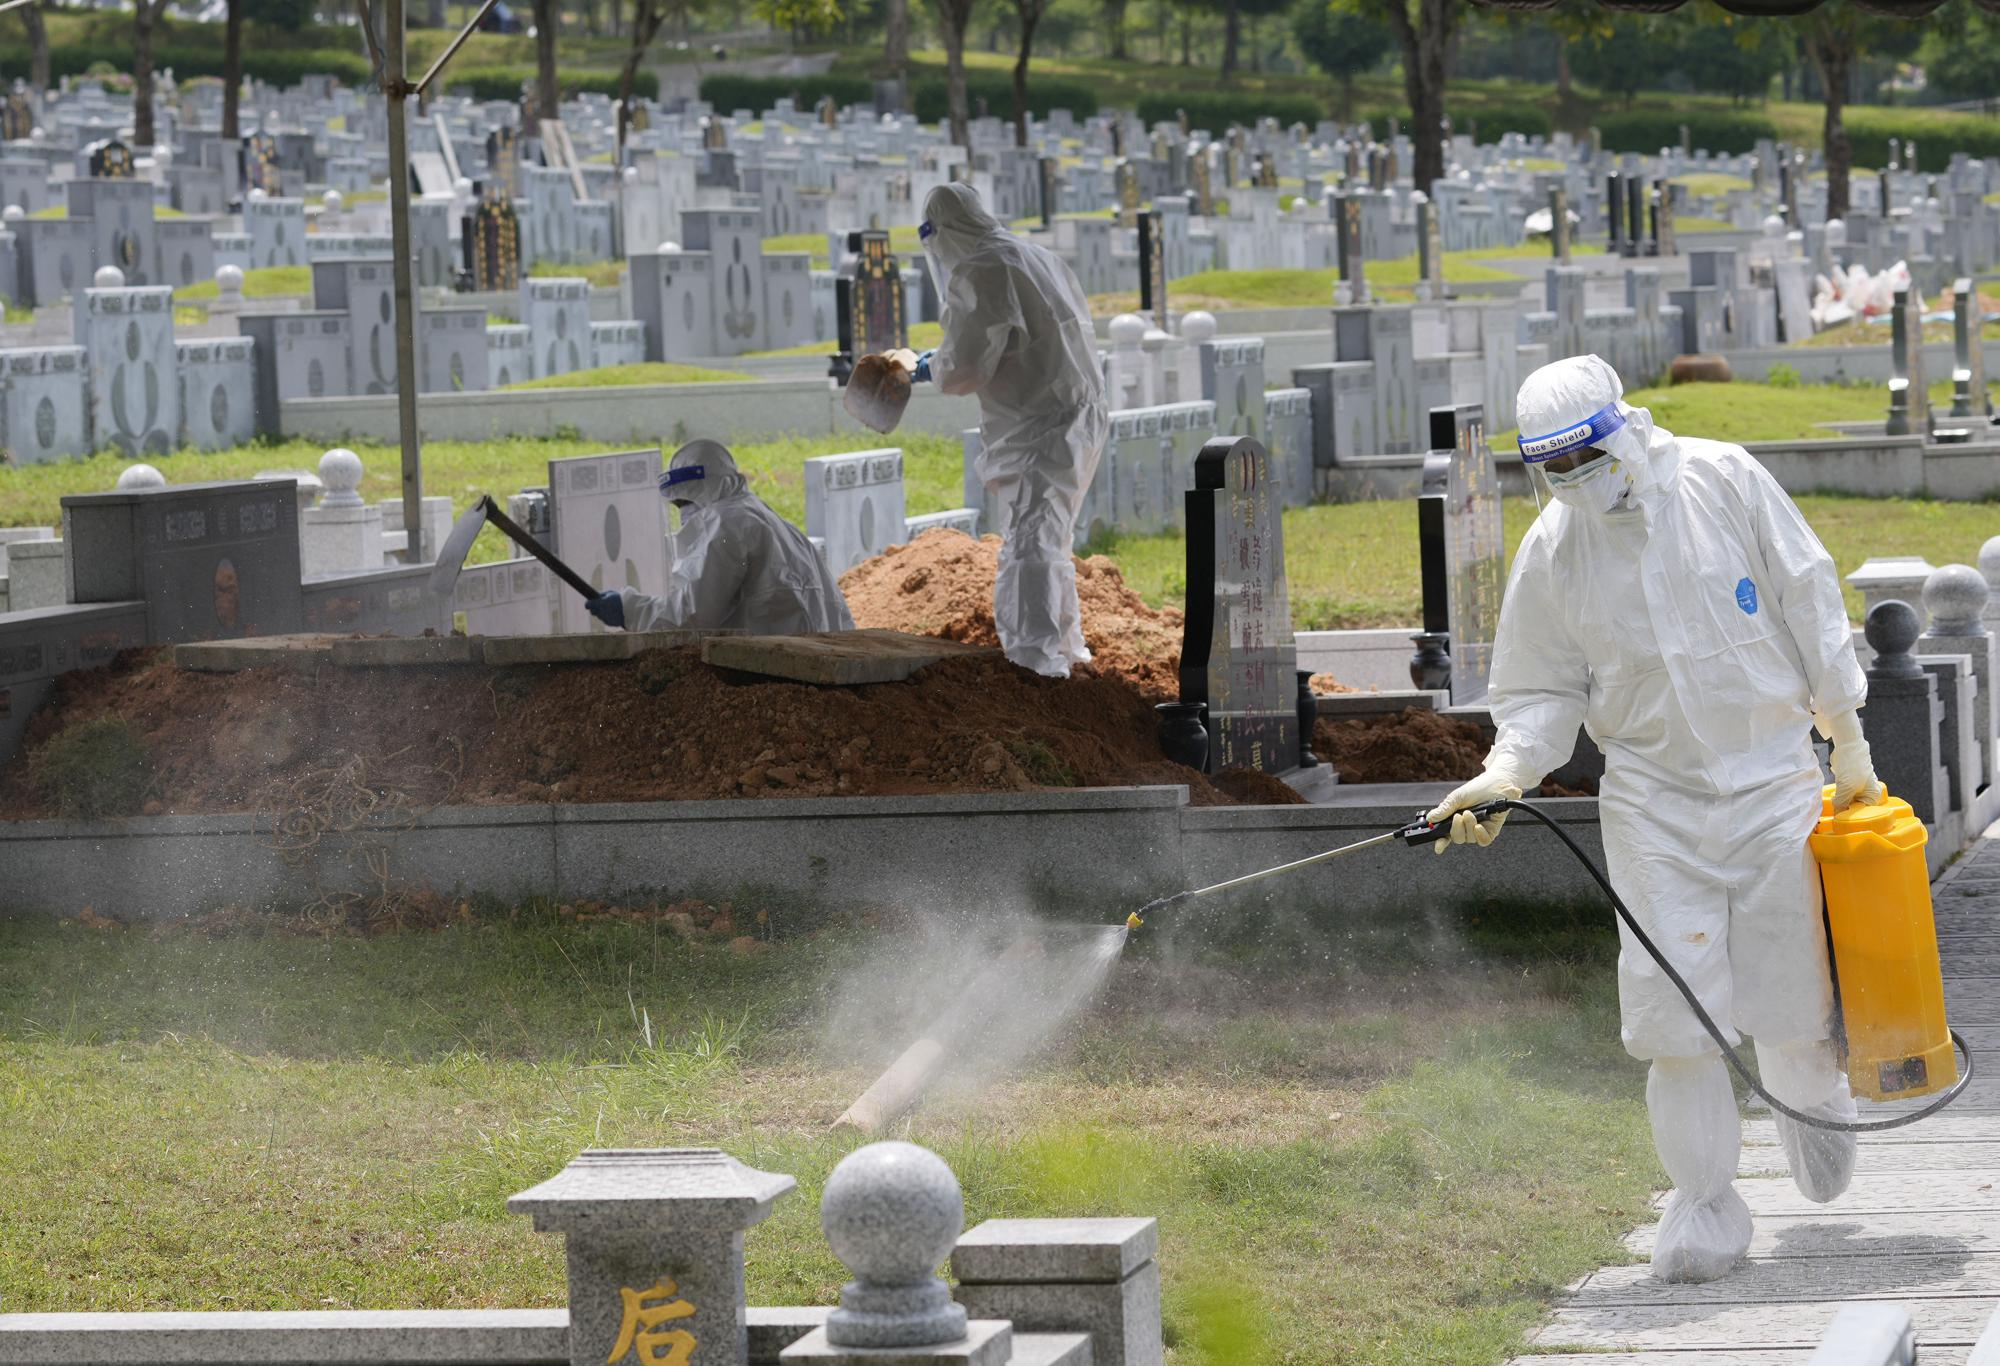 Health workers wearing Personal Protective Equipment (PPE) sanitize a field during the funeral for a COVID-19 victim at Nirvana memorial, a Buddhist, Taoist and Christian cemetery in Semenyih, Malaysia, Wednesday, May 26, 2021. Malaysia's latest coronavirus surge has been taking a turn for the worse as surging numbers and deaths have caused alarm among health officials, while cemeteries in the capital are dealing with an increasing number of deaths. (AP Photo/Vincent Thian)